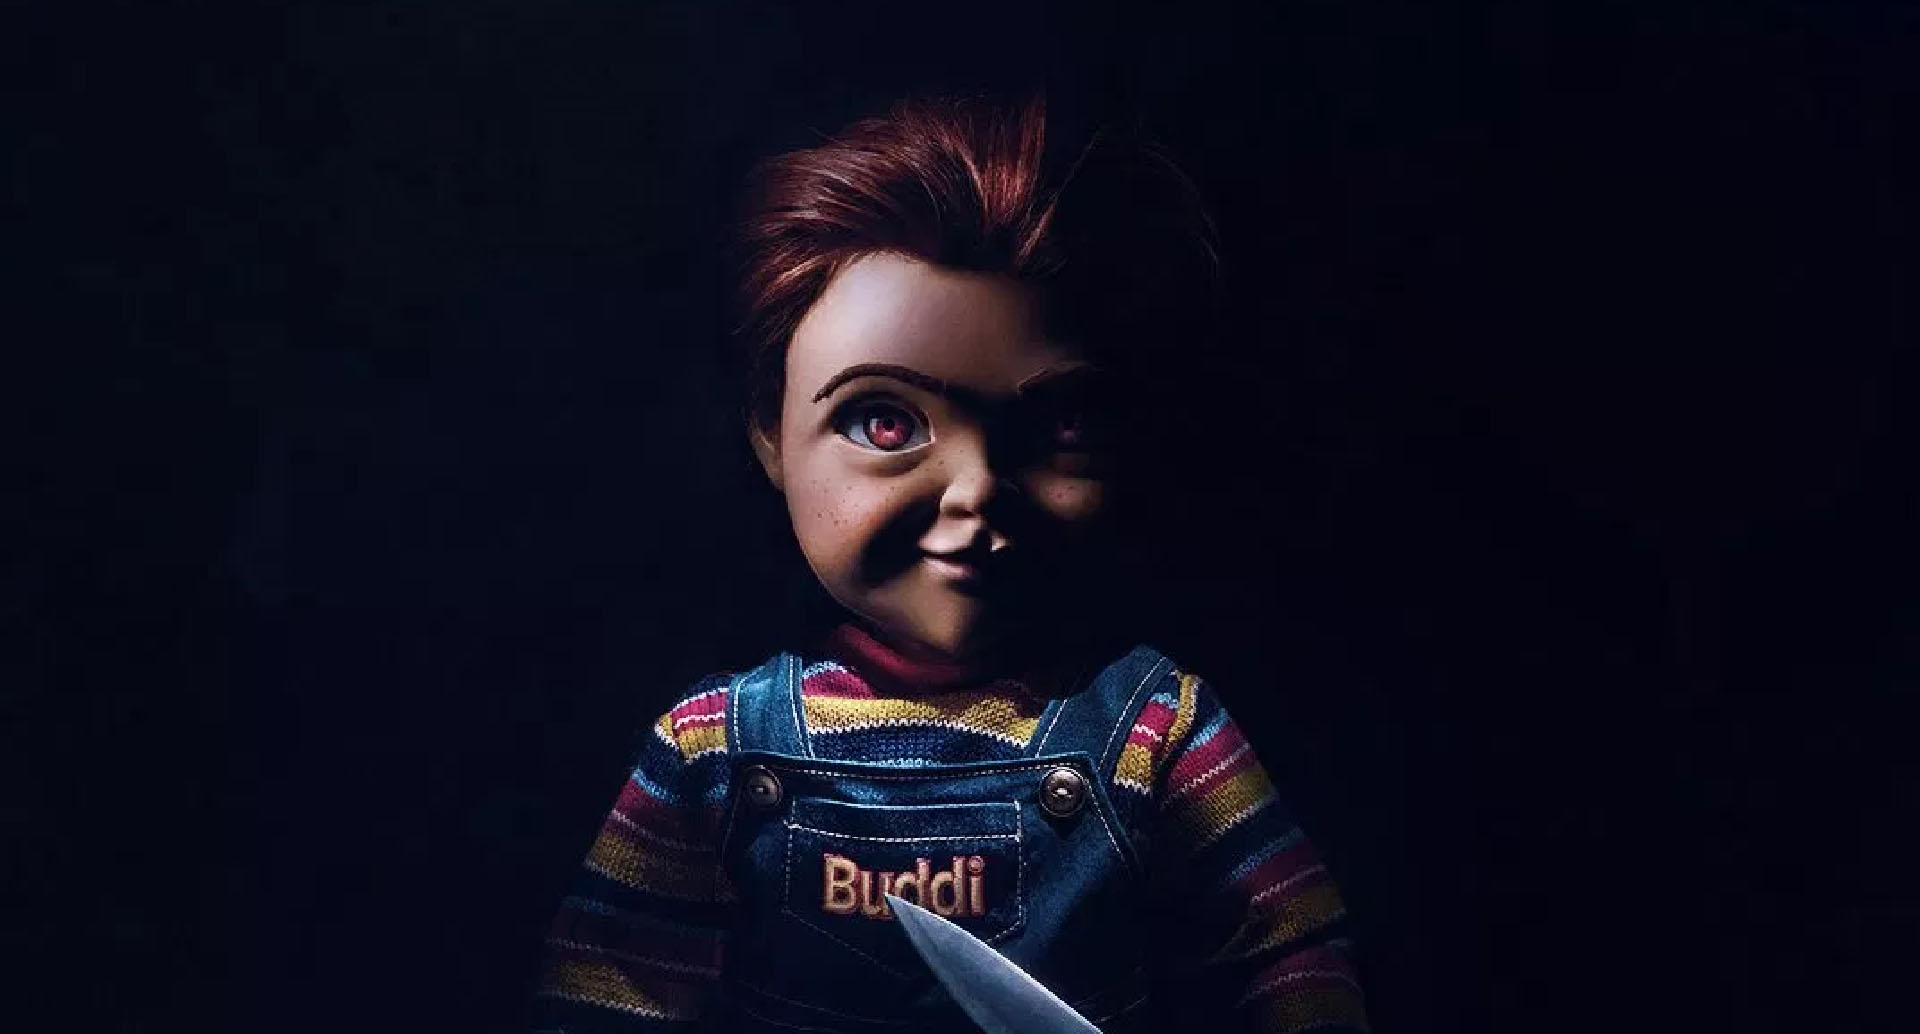 Child's Play Fans Divided over Chucky's New Look